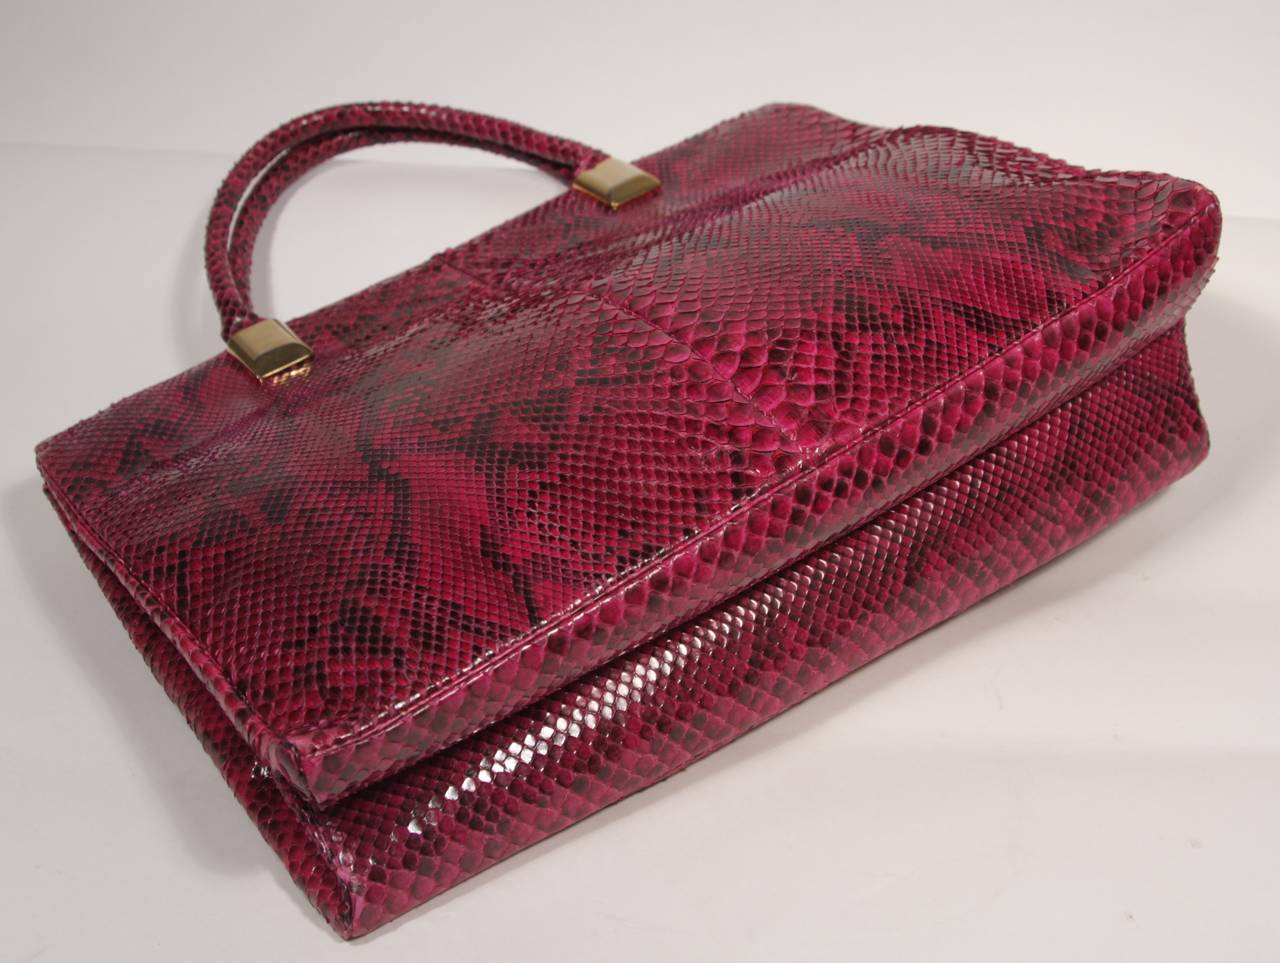 1980's Judith Leiber Extra Large Magenta Snakeskin Tote with Gold Hardware 8